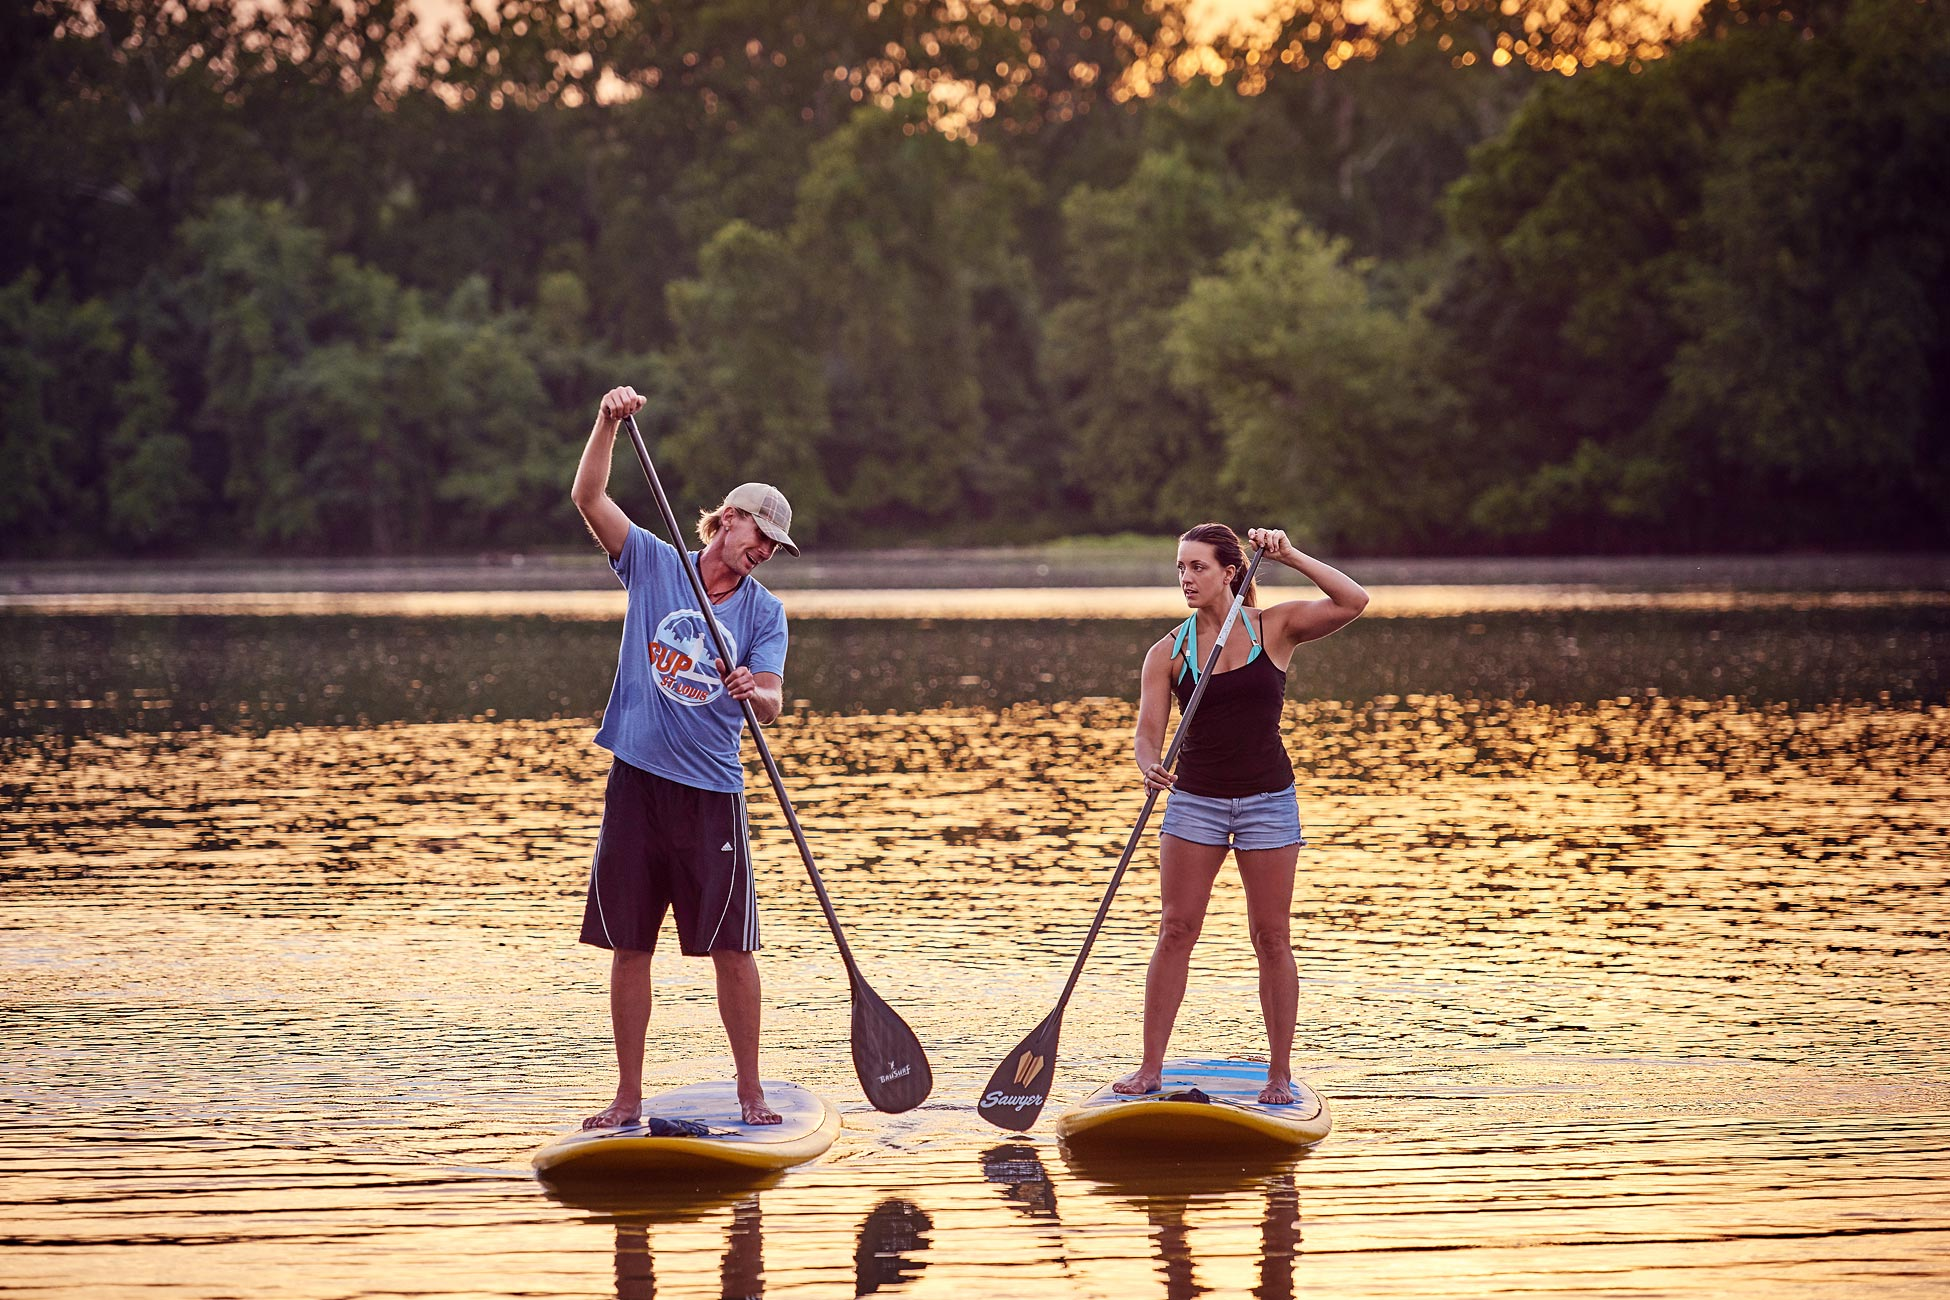 Standup_Paddle_Board_Sunset_2